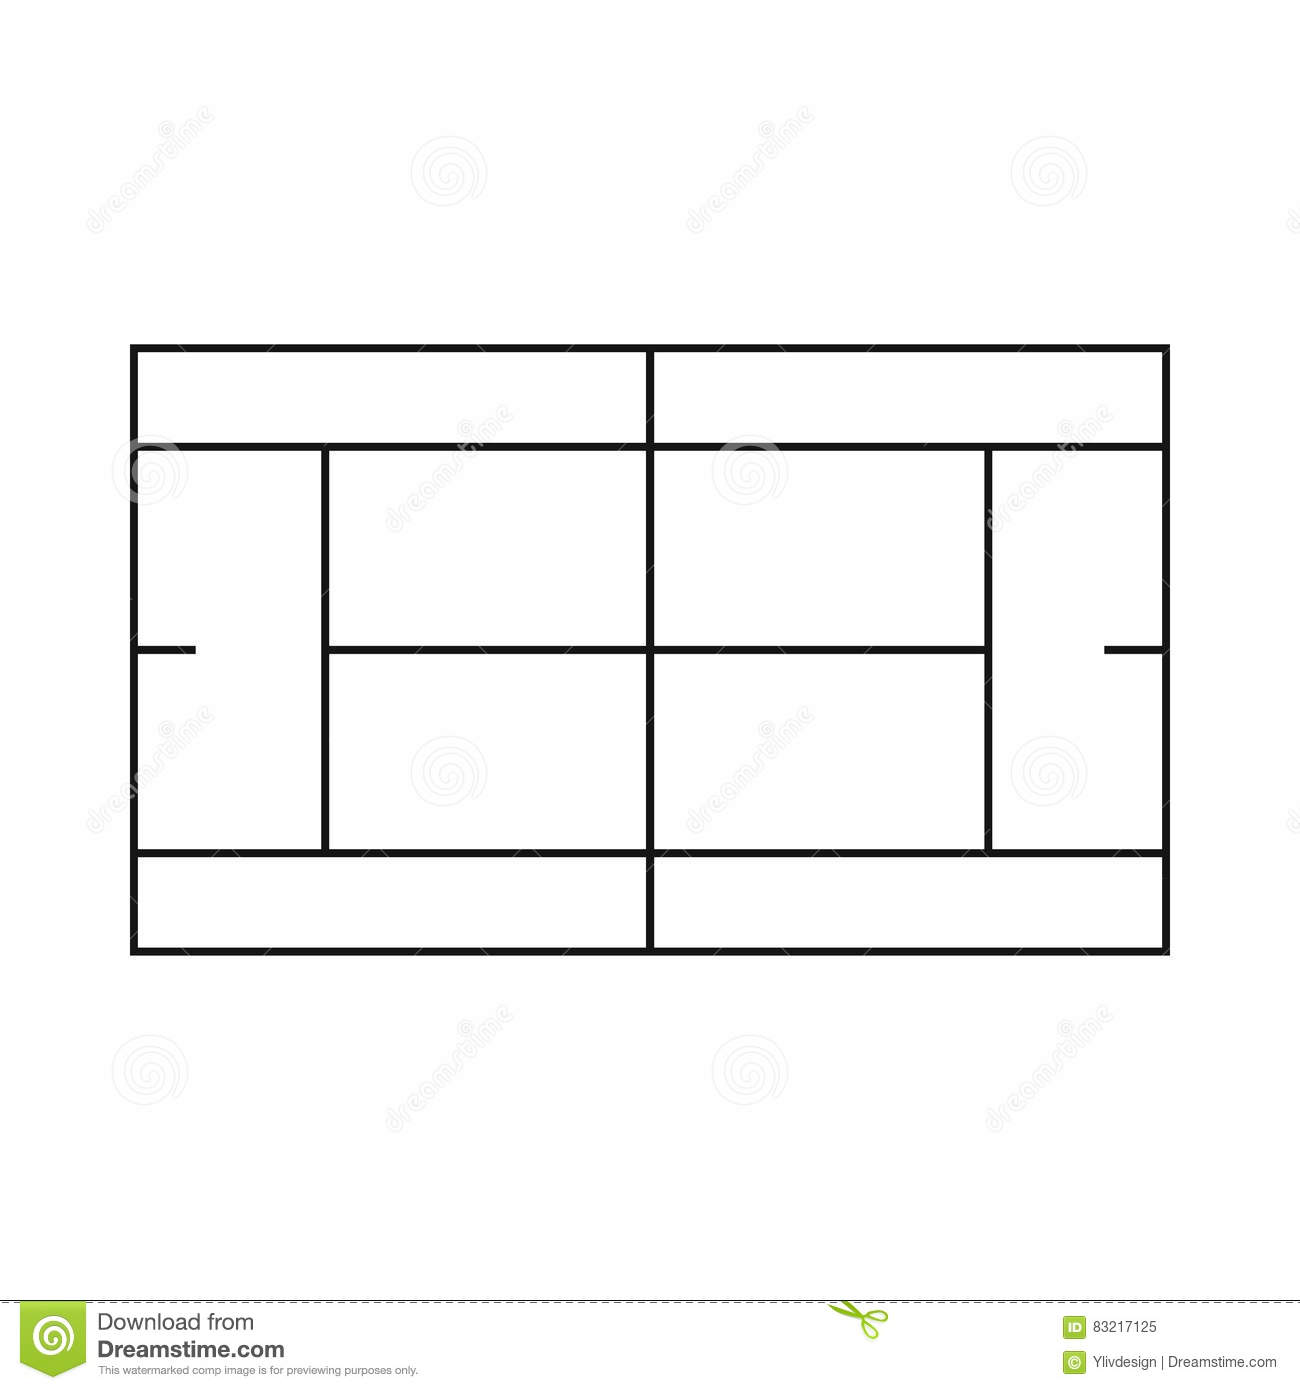 Tennis Court Clipart Black And White.